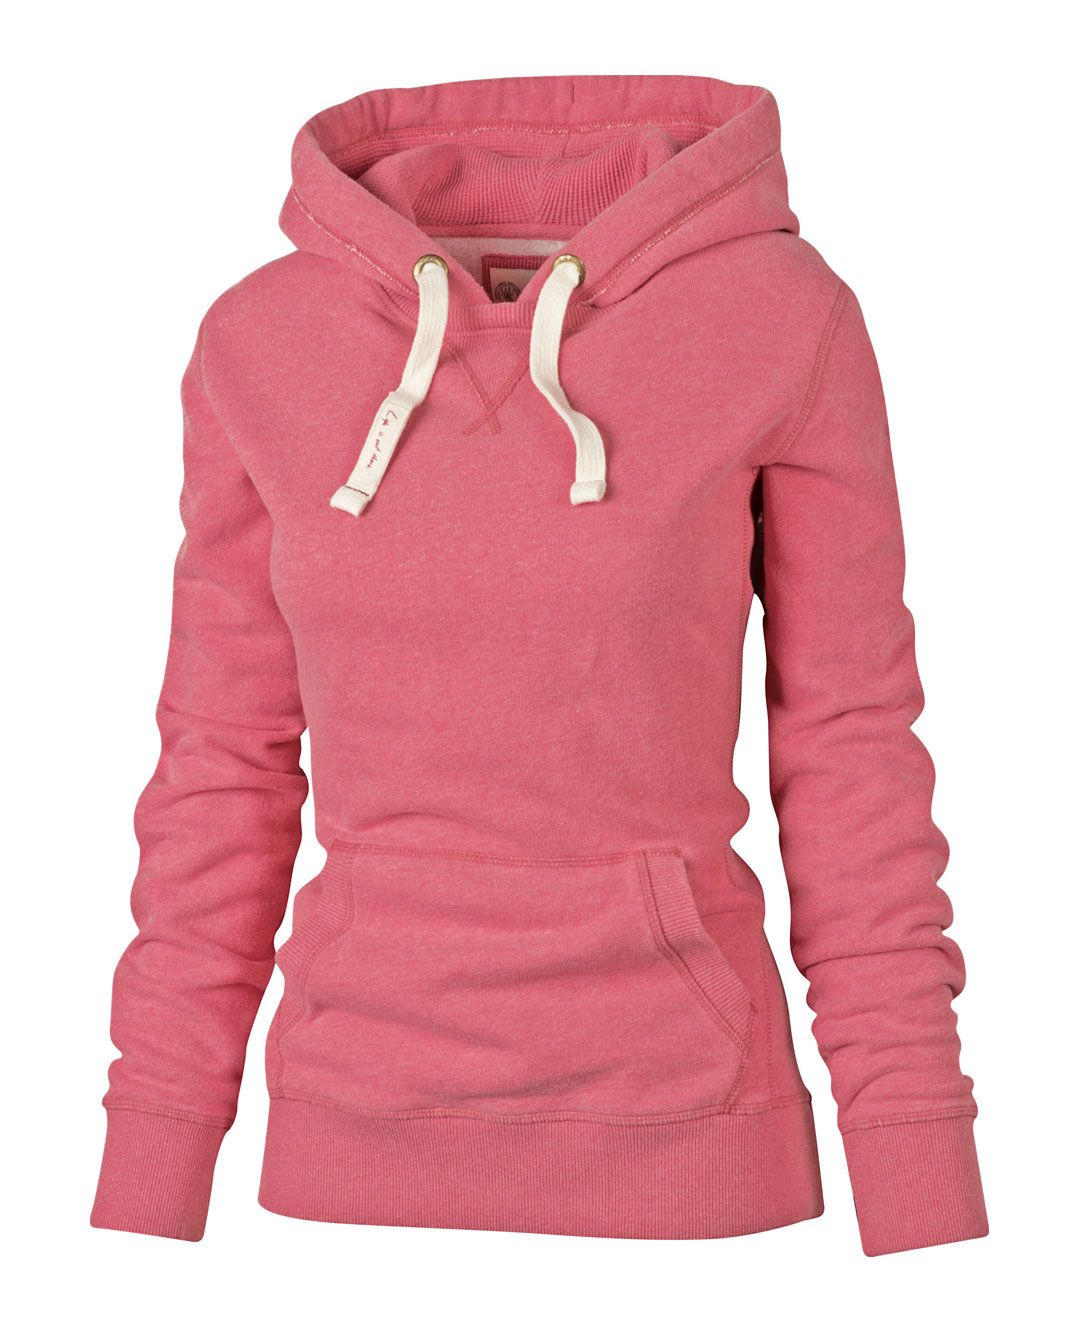 0eec8ffbf Simple Hooded Long Sleeve Pocket Design Women's Hoodie in 2019 ...